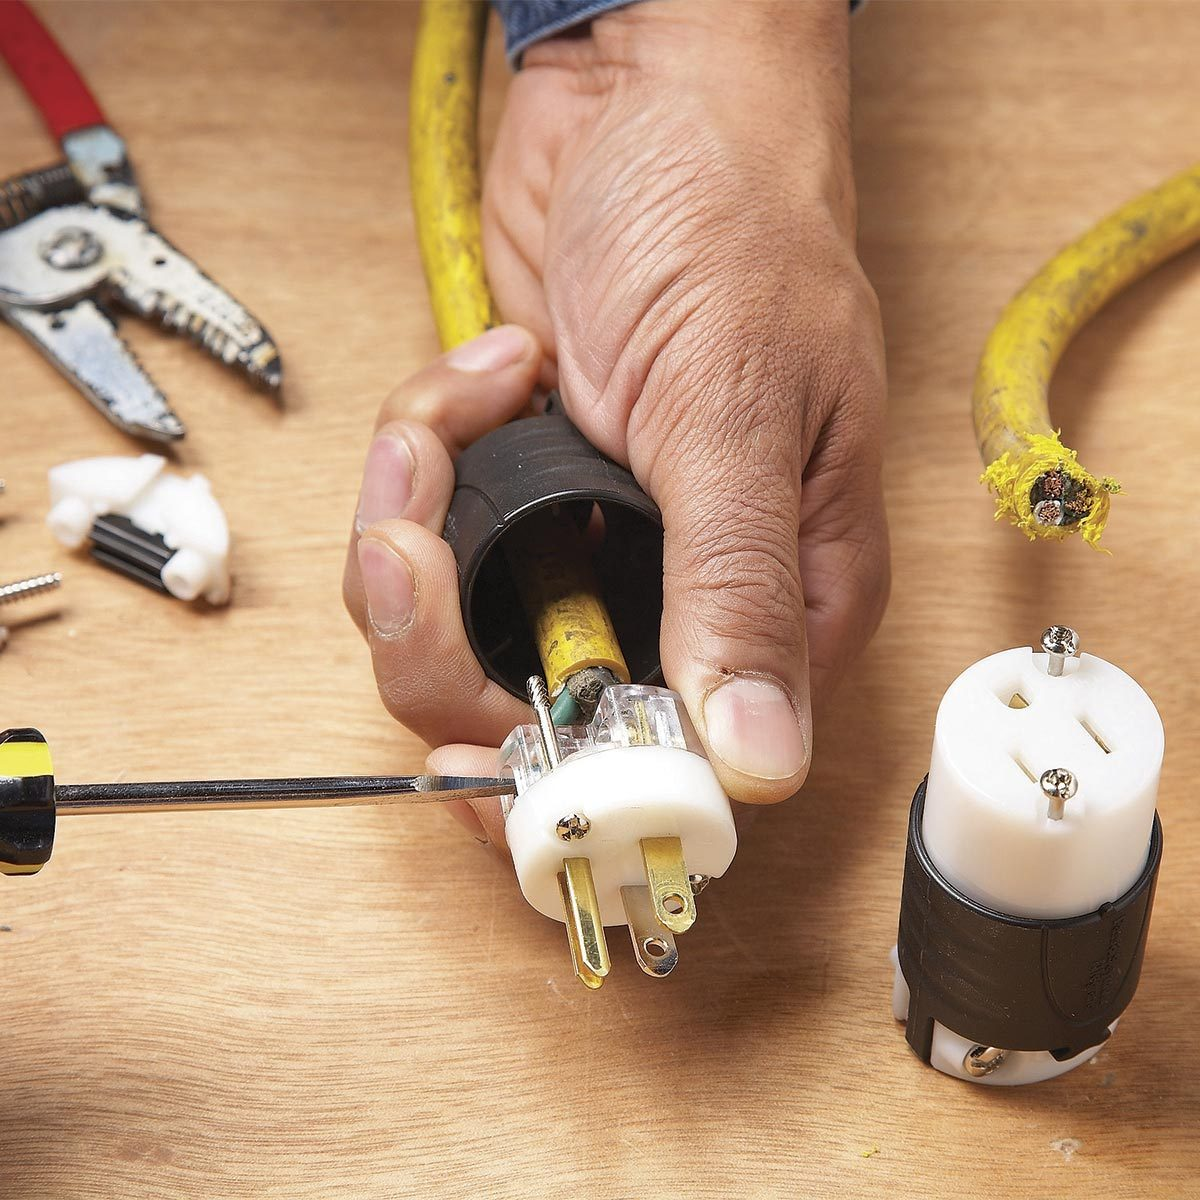 18 DIY Fixes for Broken Electrical Items at Home